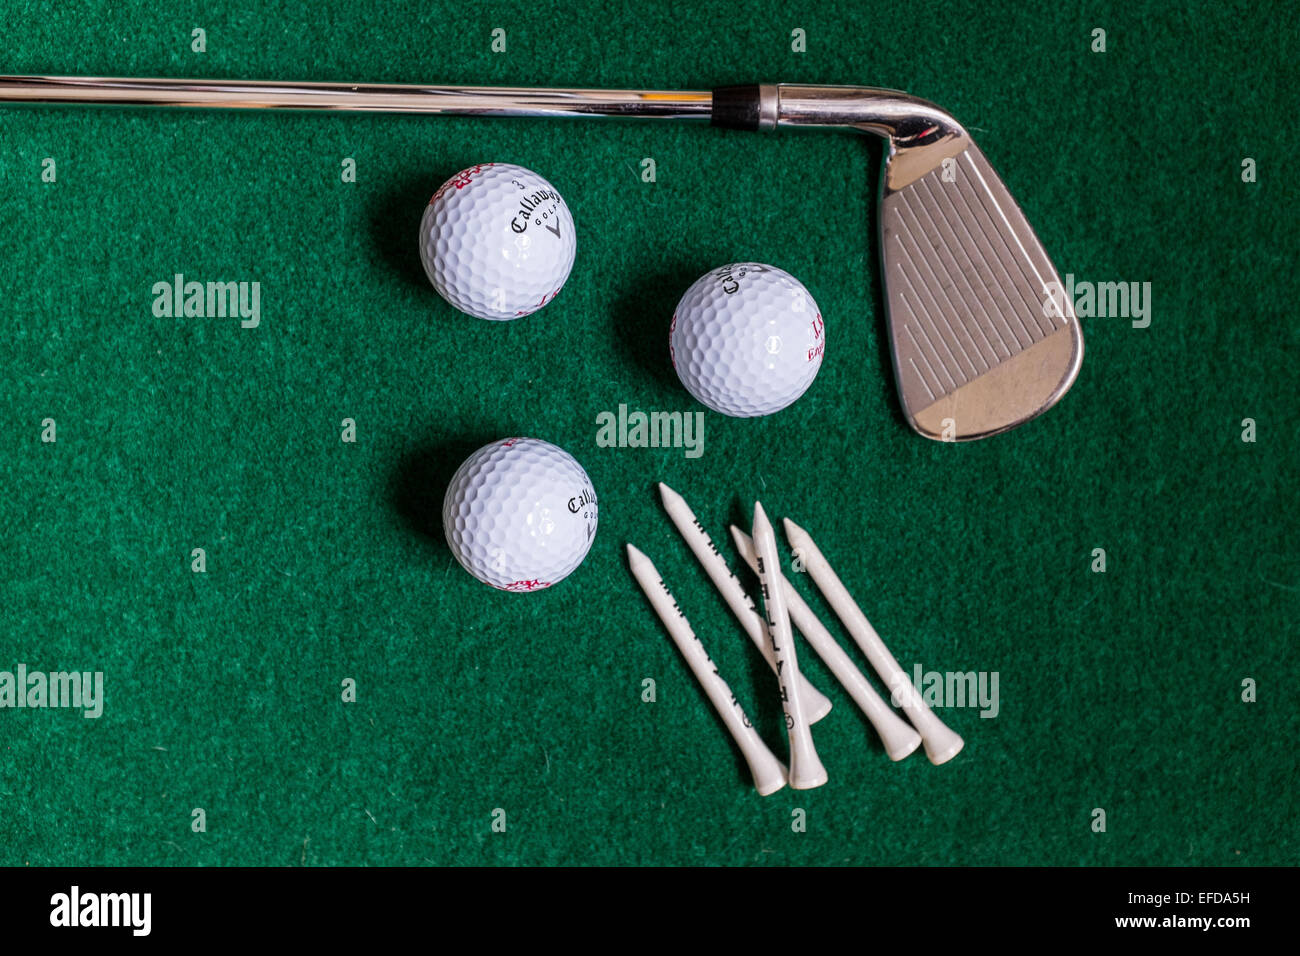 Golf club with tees and balls - Stock Image